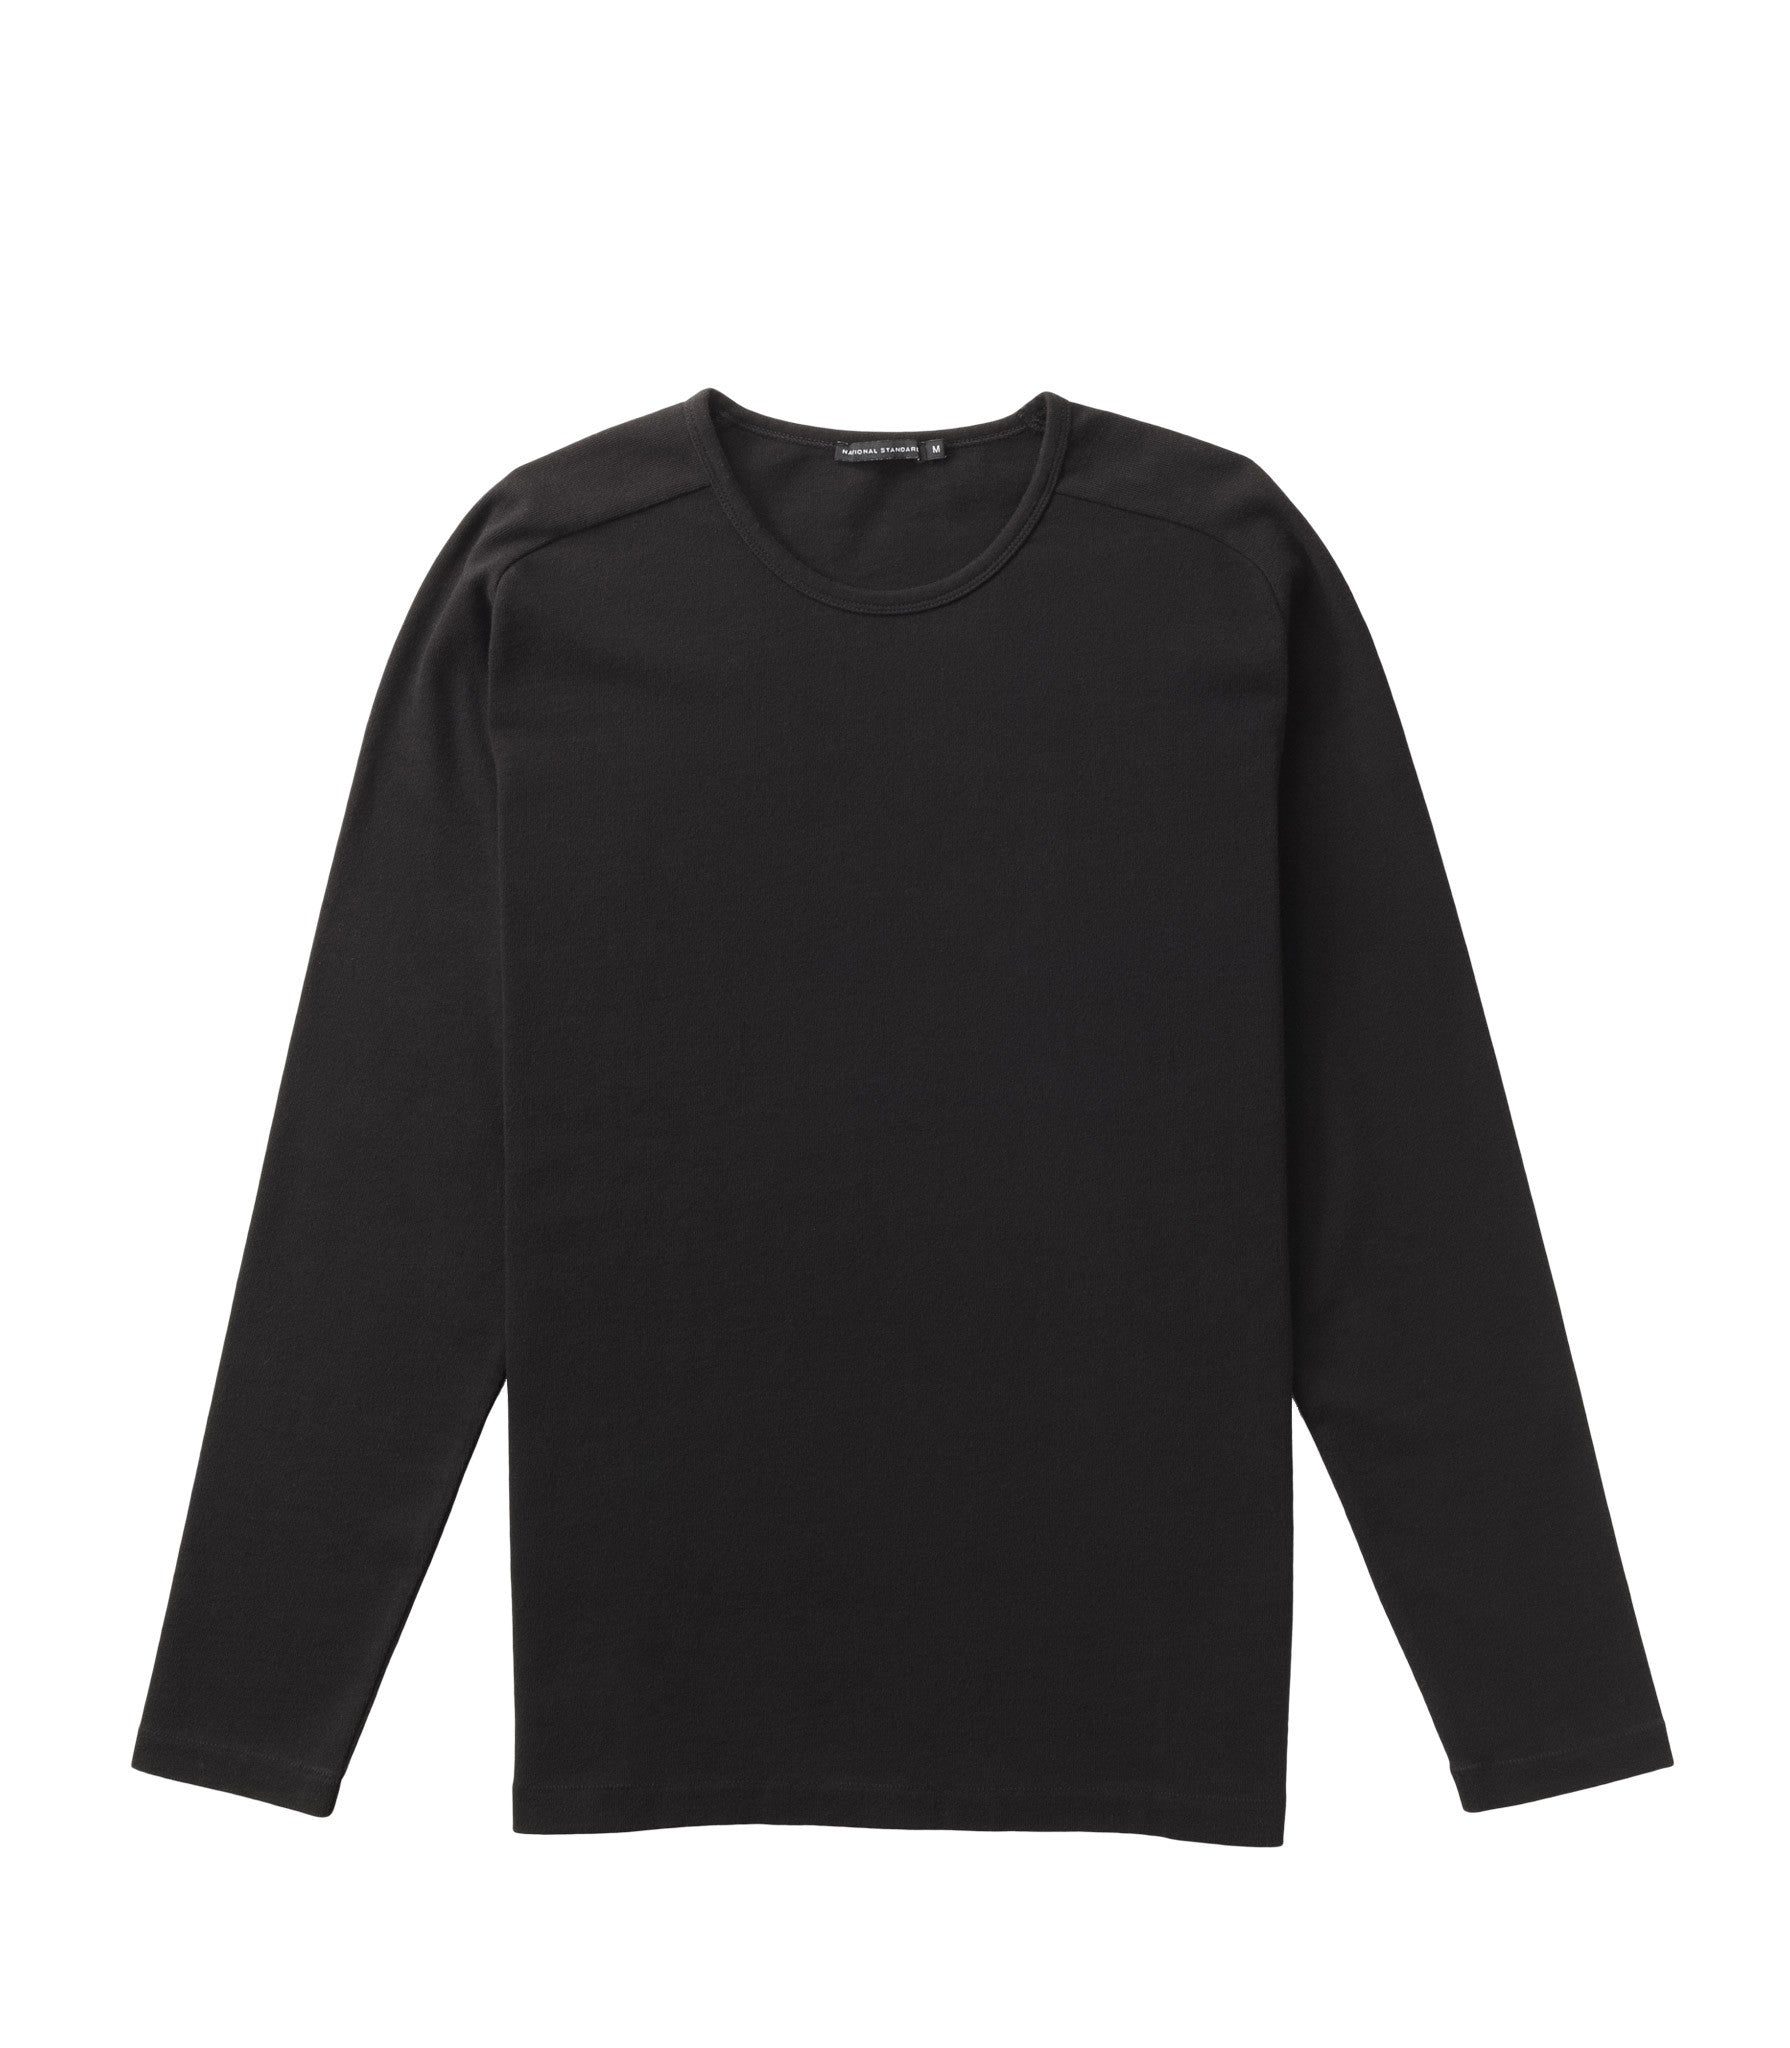 Supreme cotton raglan crew in Black